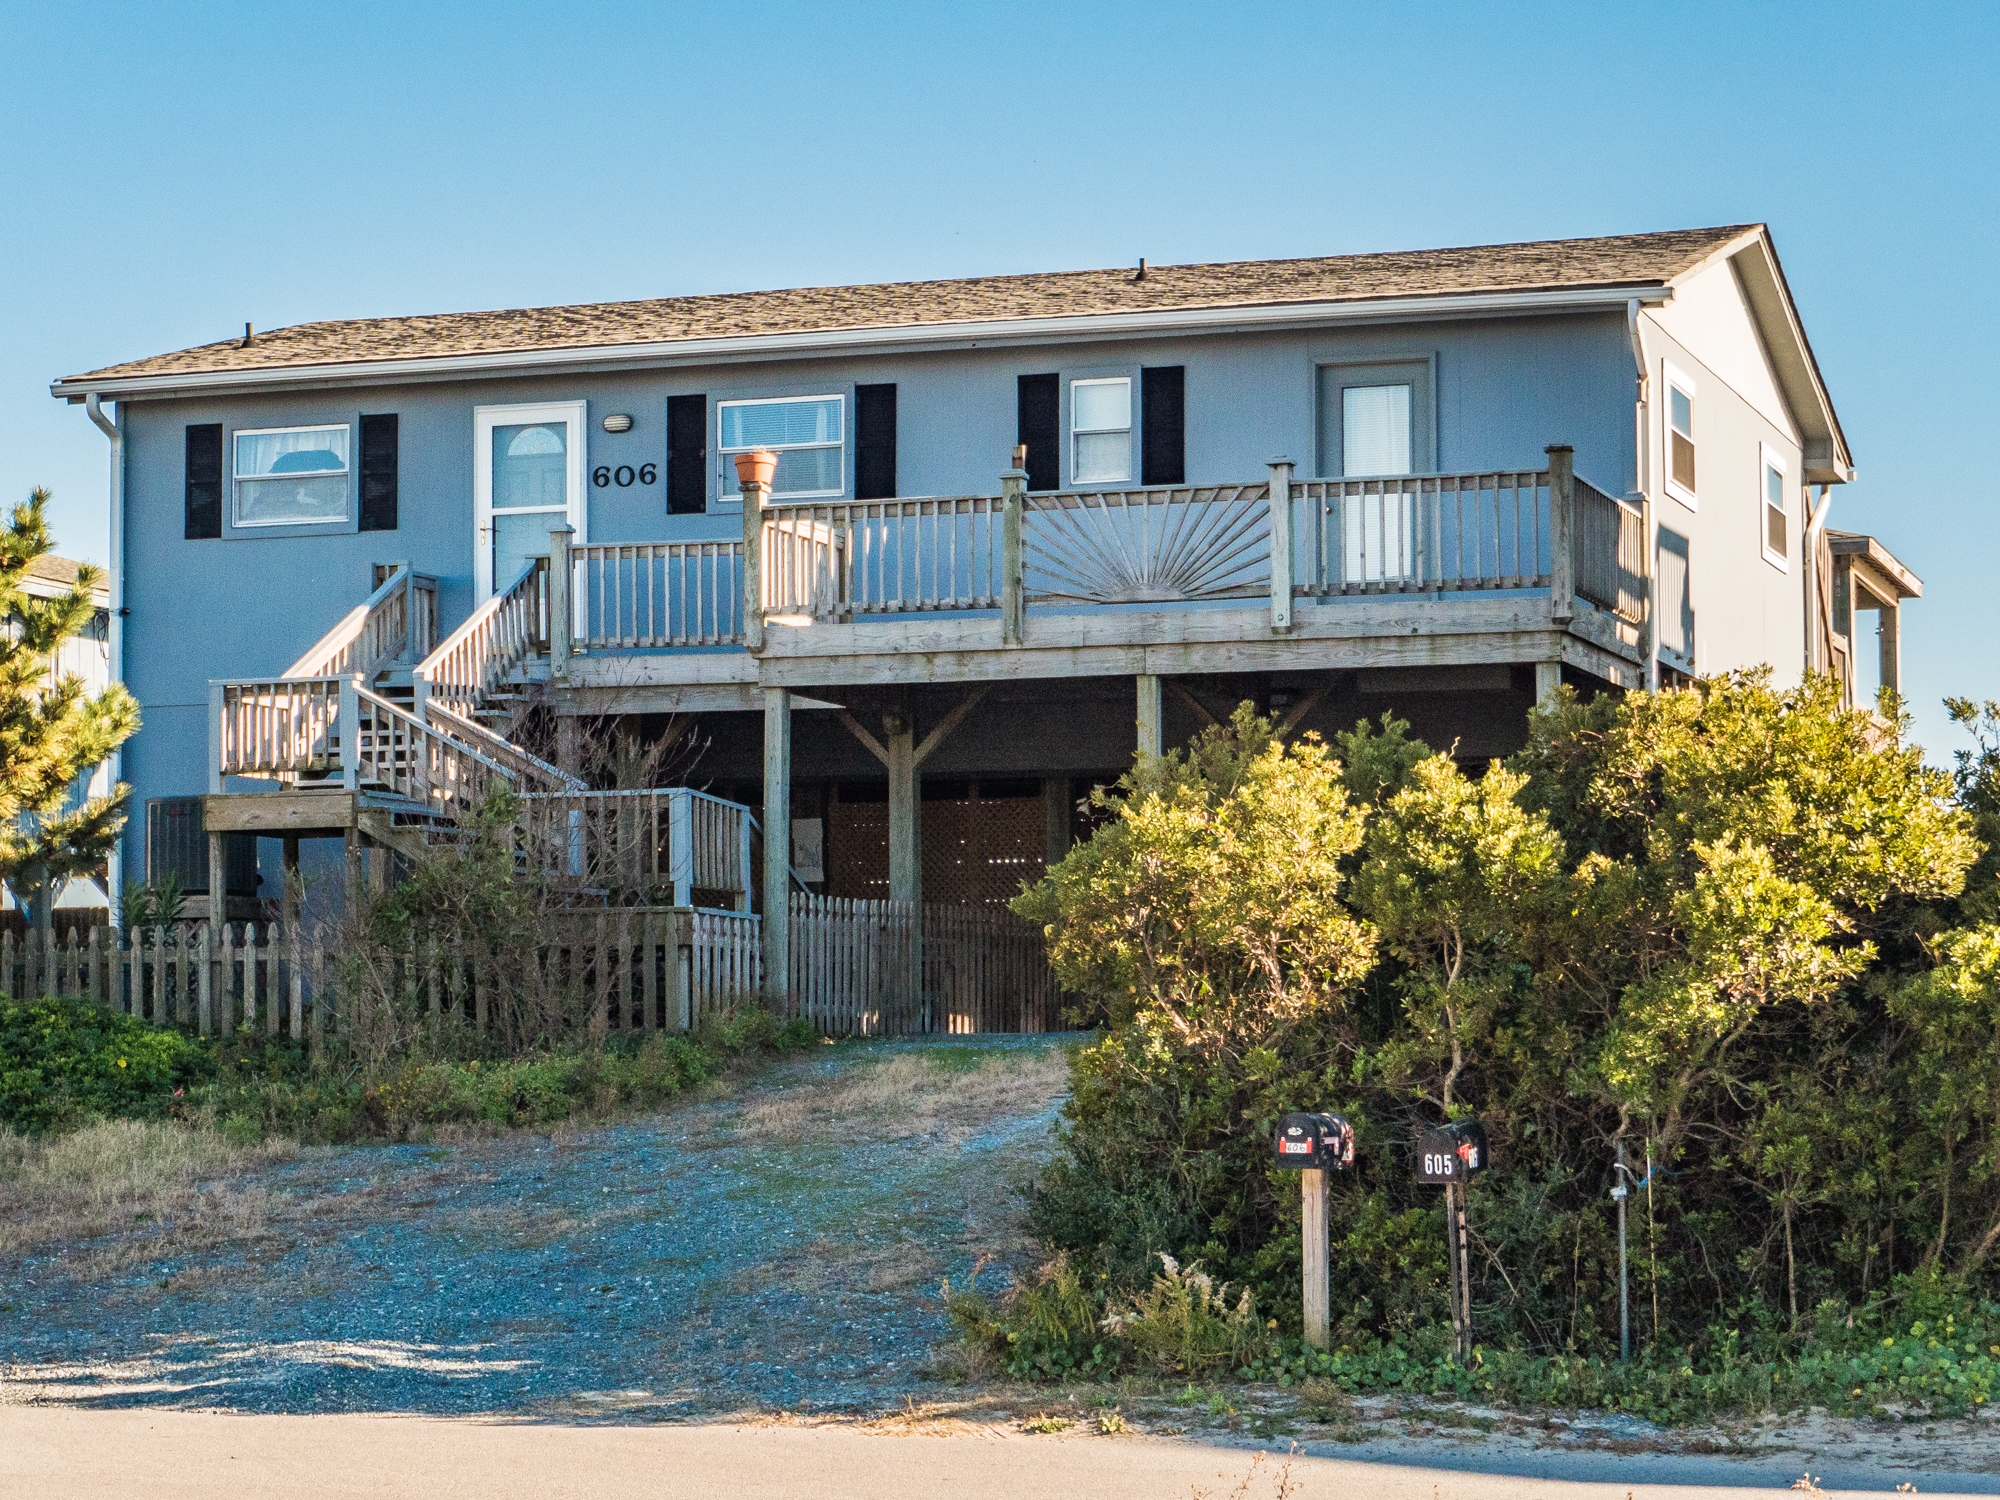 Single Family Home for Sale at Classic Topsail Beach Cottage 606 N Shore Drive Surf City, North Carolina, 28445 United States